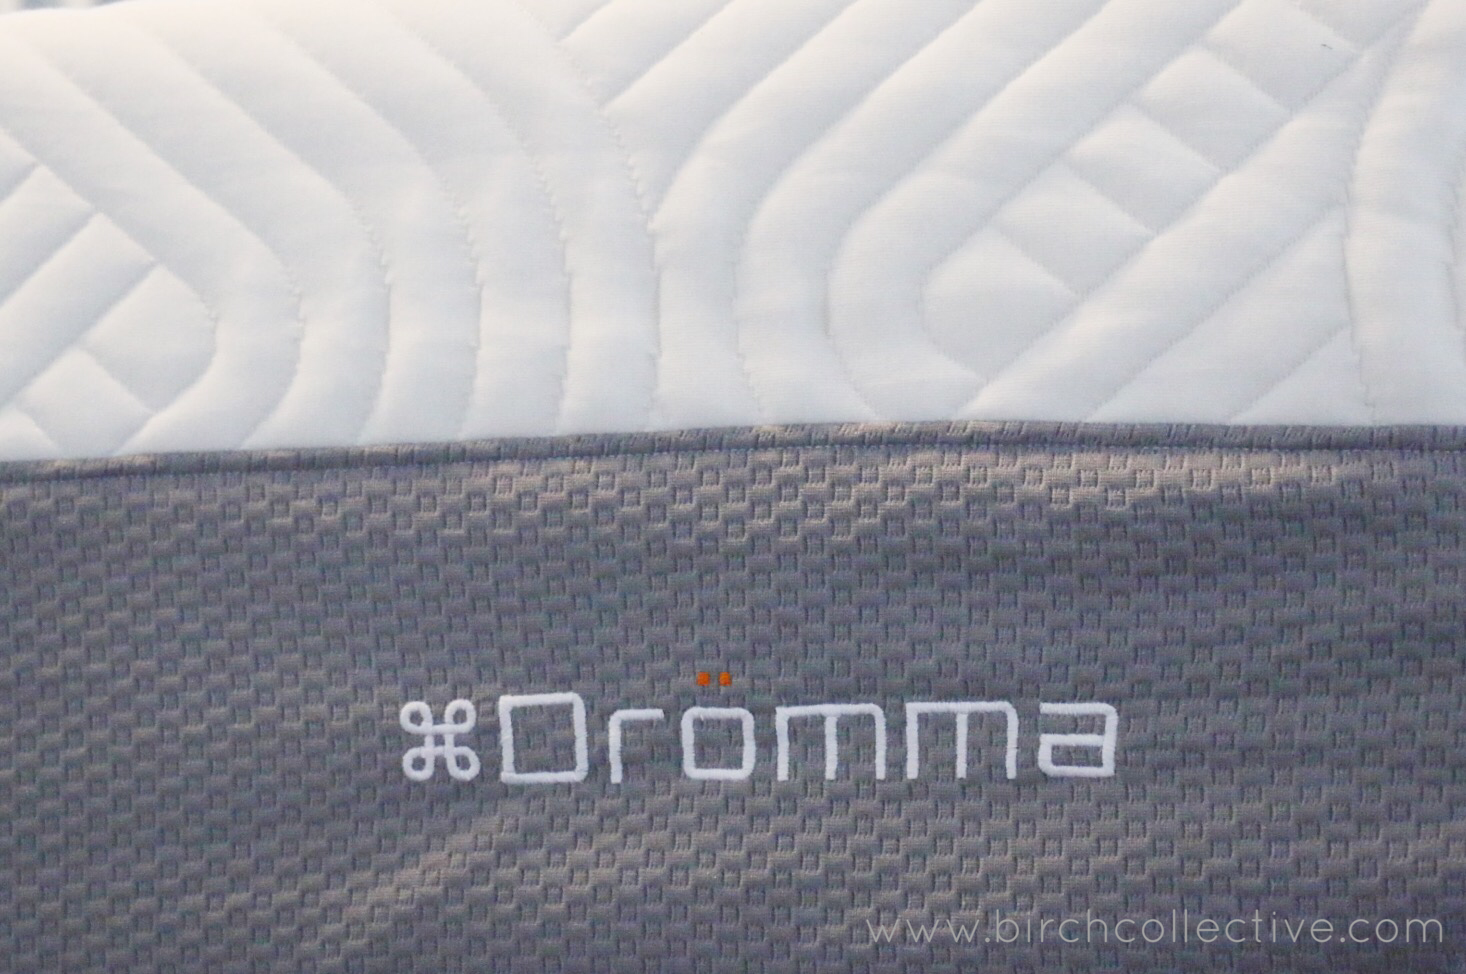 dromma-mattress-bed-logo-close-up